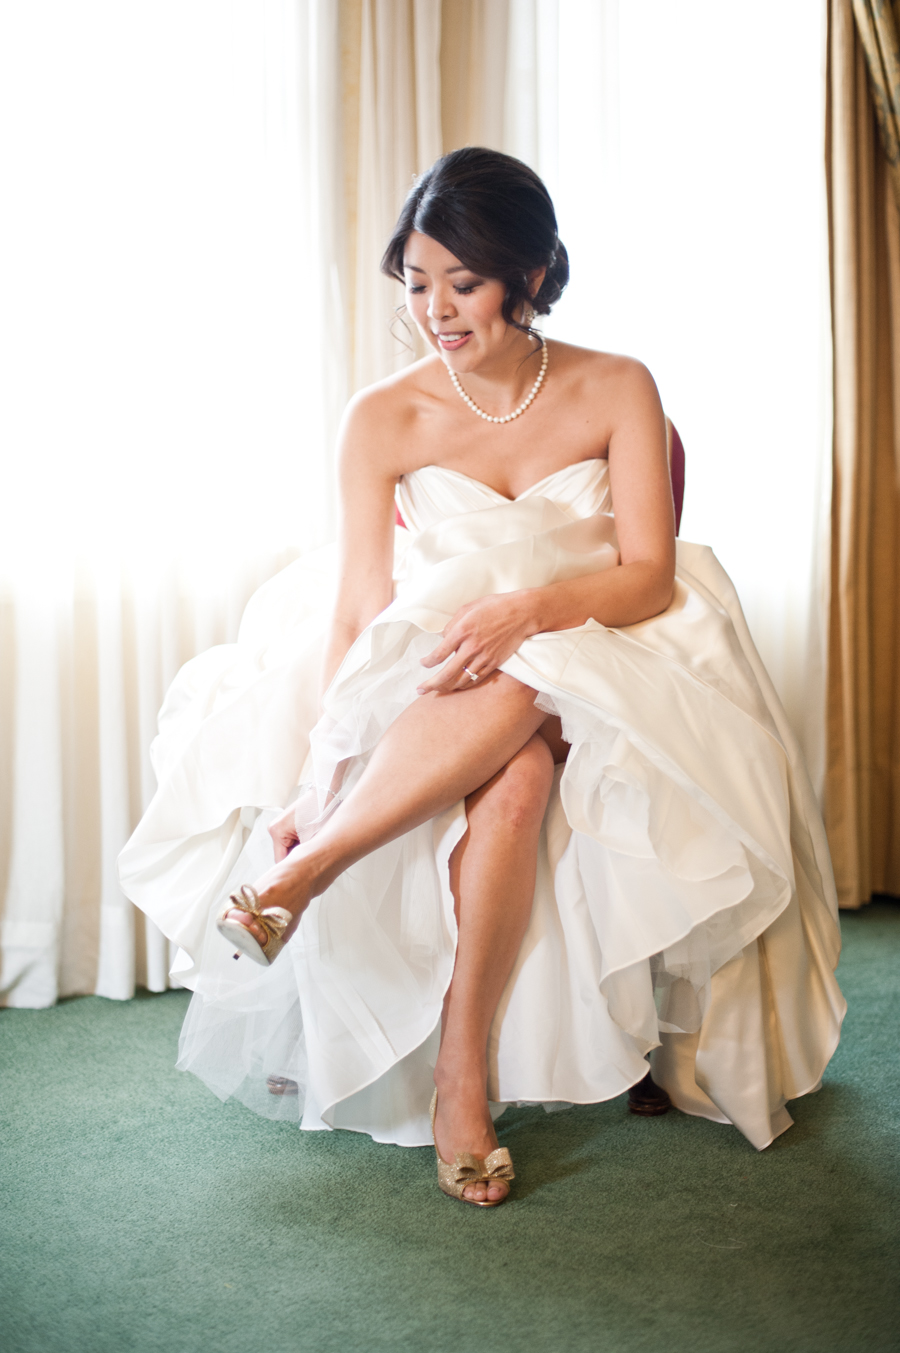 Bridal Beauty by Rhia Amio Toronto Make-up and Hair Artist